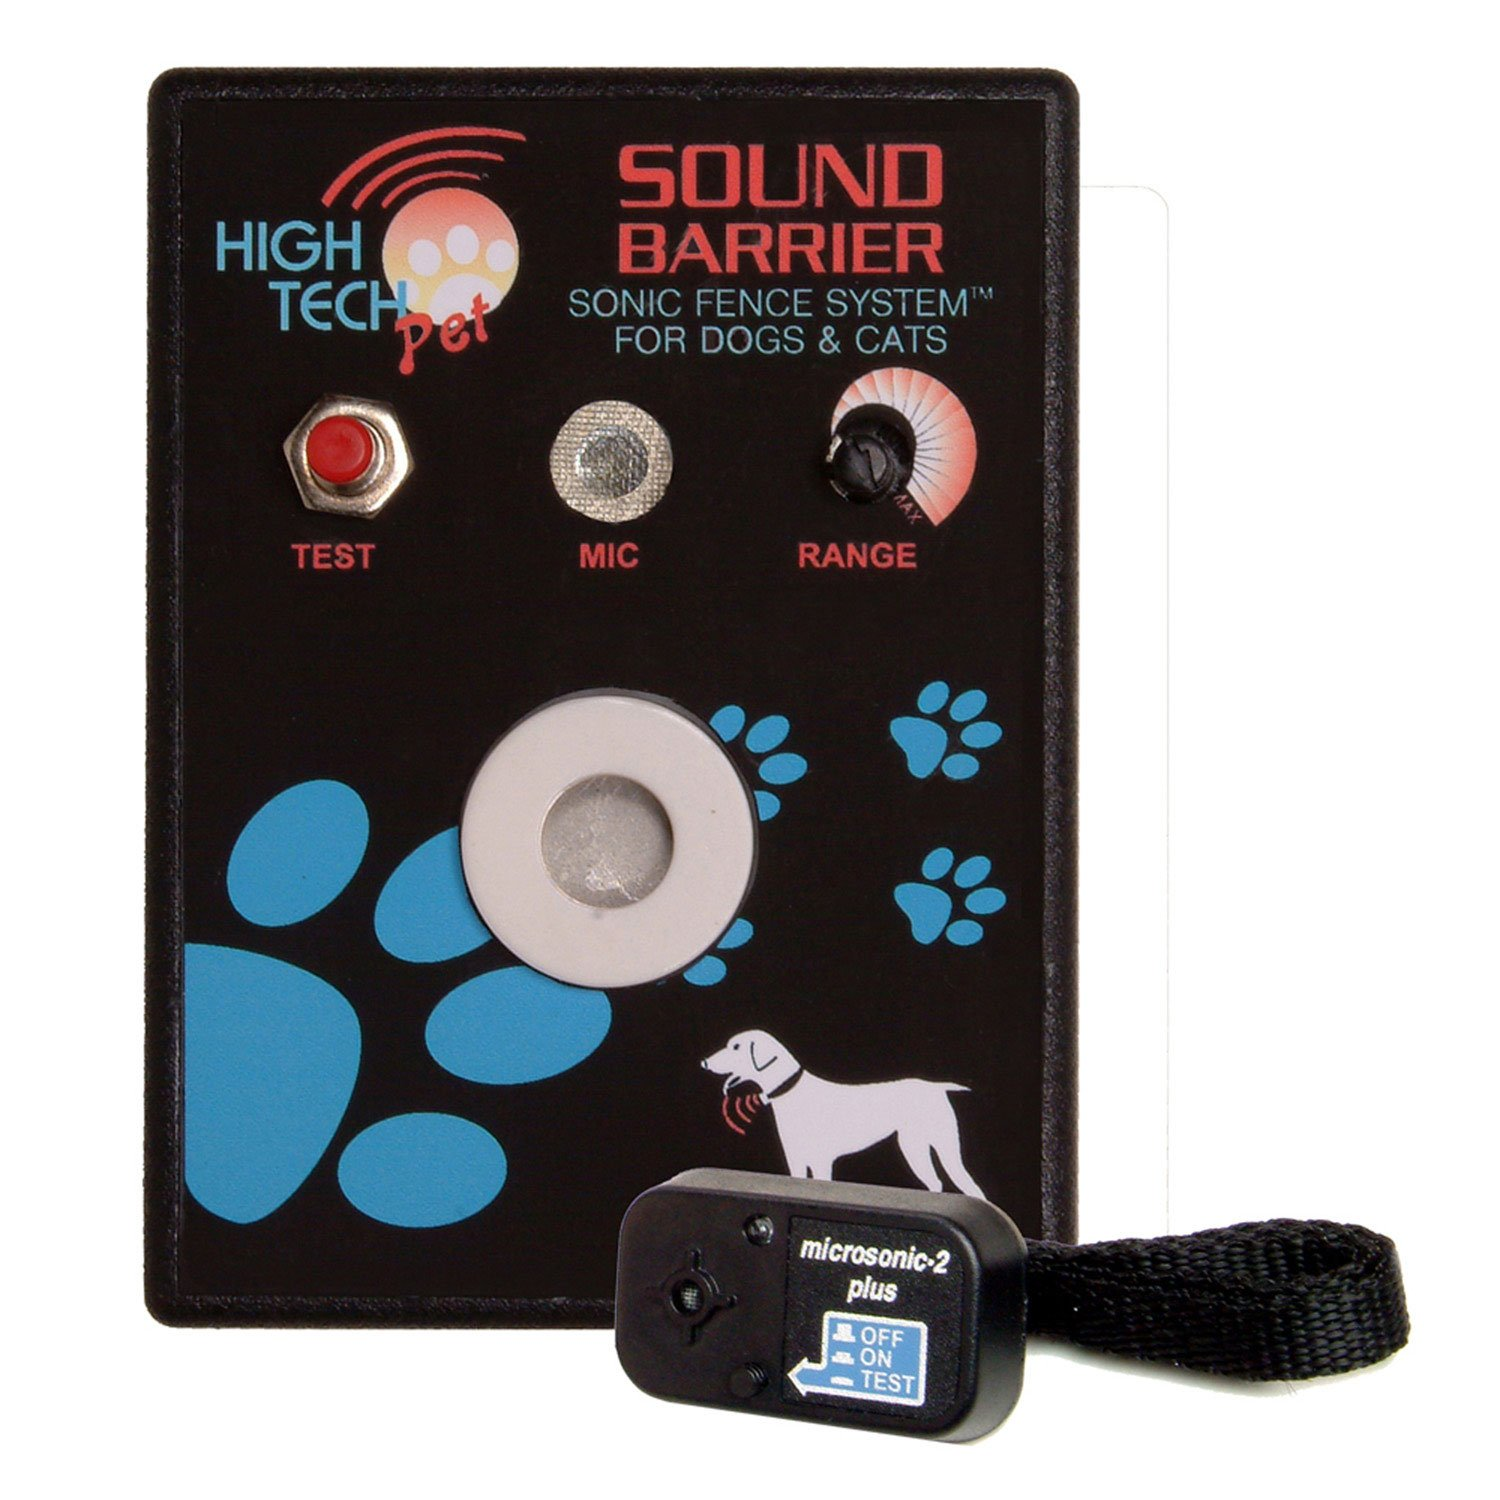 High Tech Pet Sound Barrier Indoor Pet Barrier | Petco